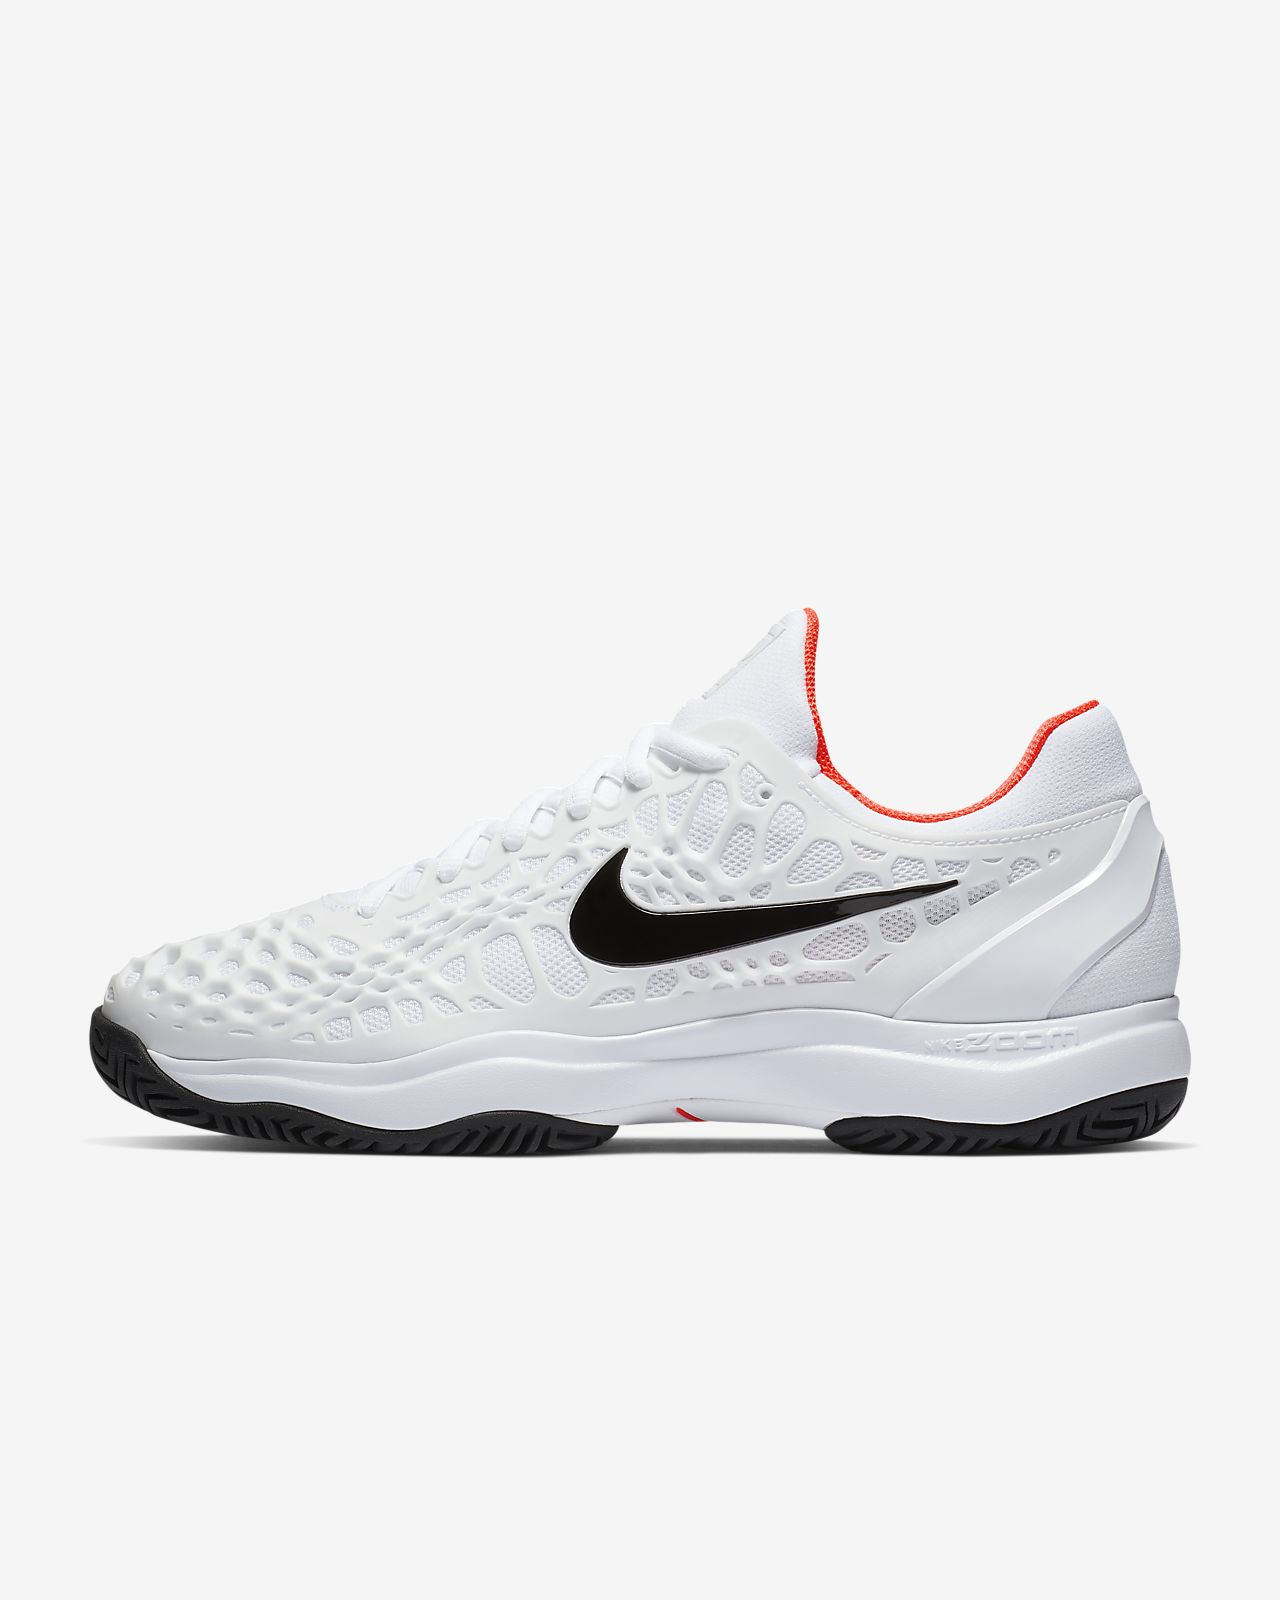 2f9be26a63ff ... NikeCourt Zoom Cage 3 Men s Hard Court Tennis Shoe